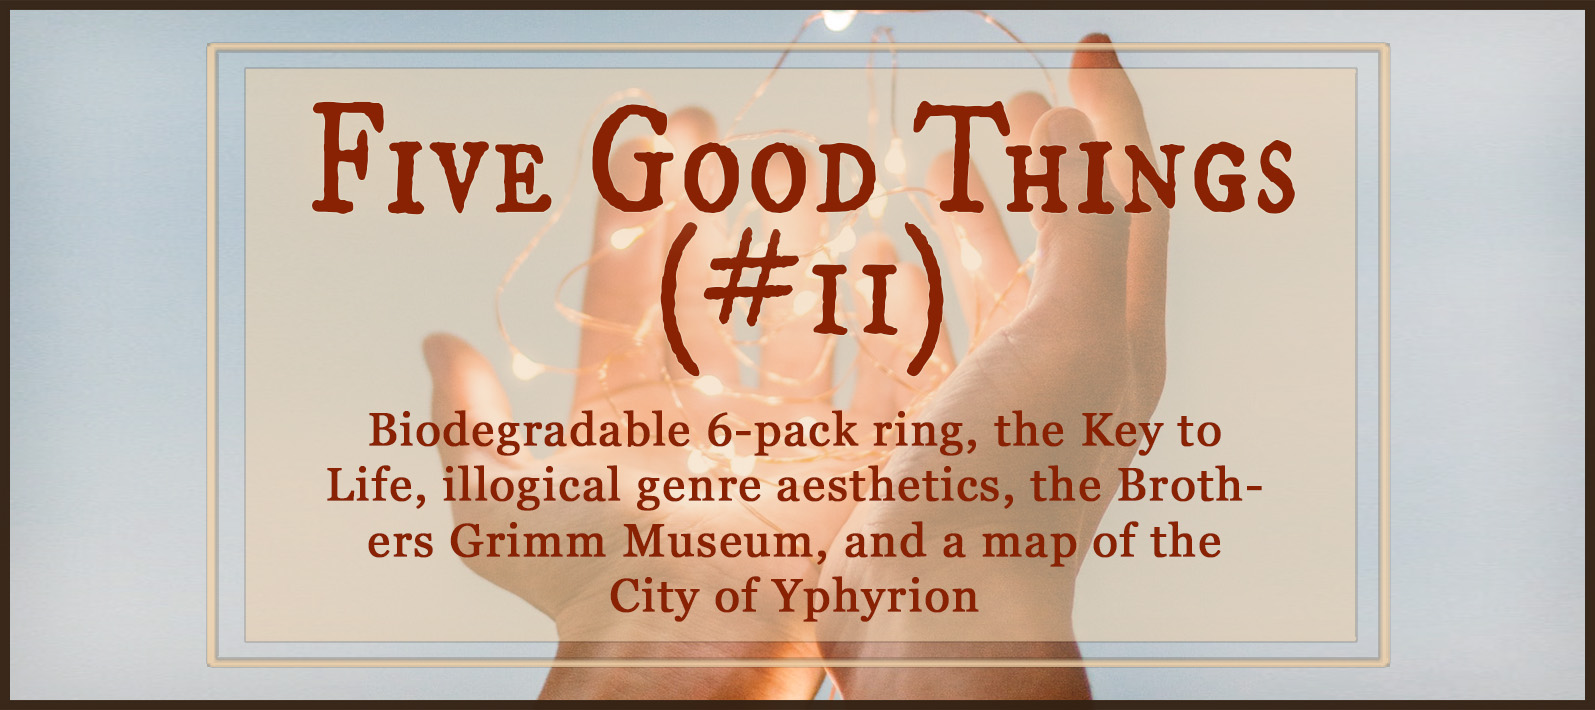 Five Good Things #11 (Amazing People Doing Amazing Things) — Terrible, trying things happen, sure, but among all the tears and terror, there are beautiful things going on. Check out these amazing people using their noggins for good things! https://robinlythgoe.com